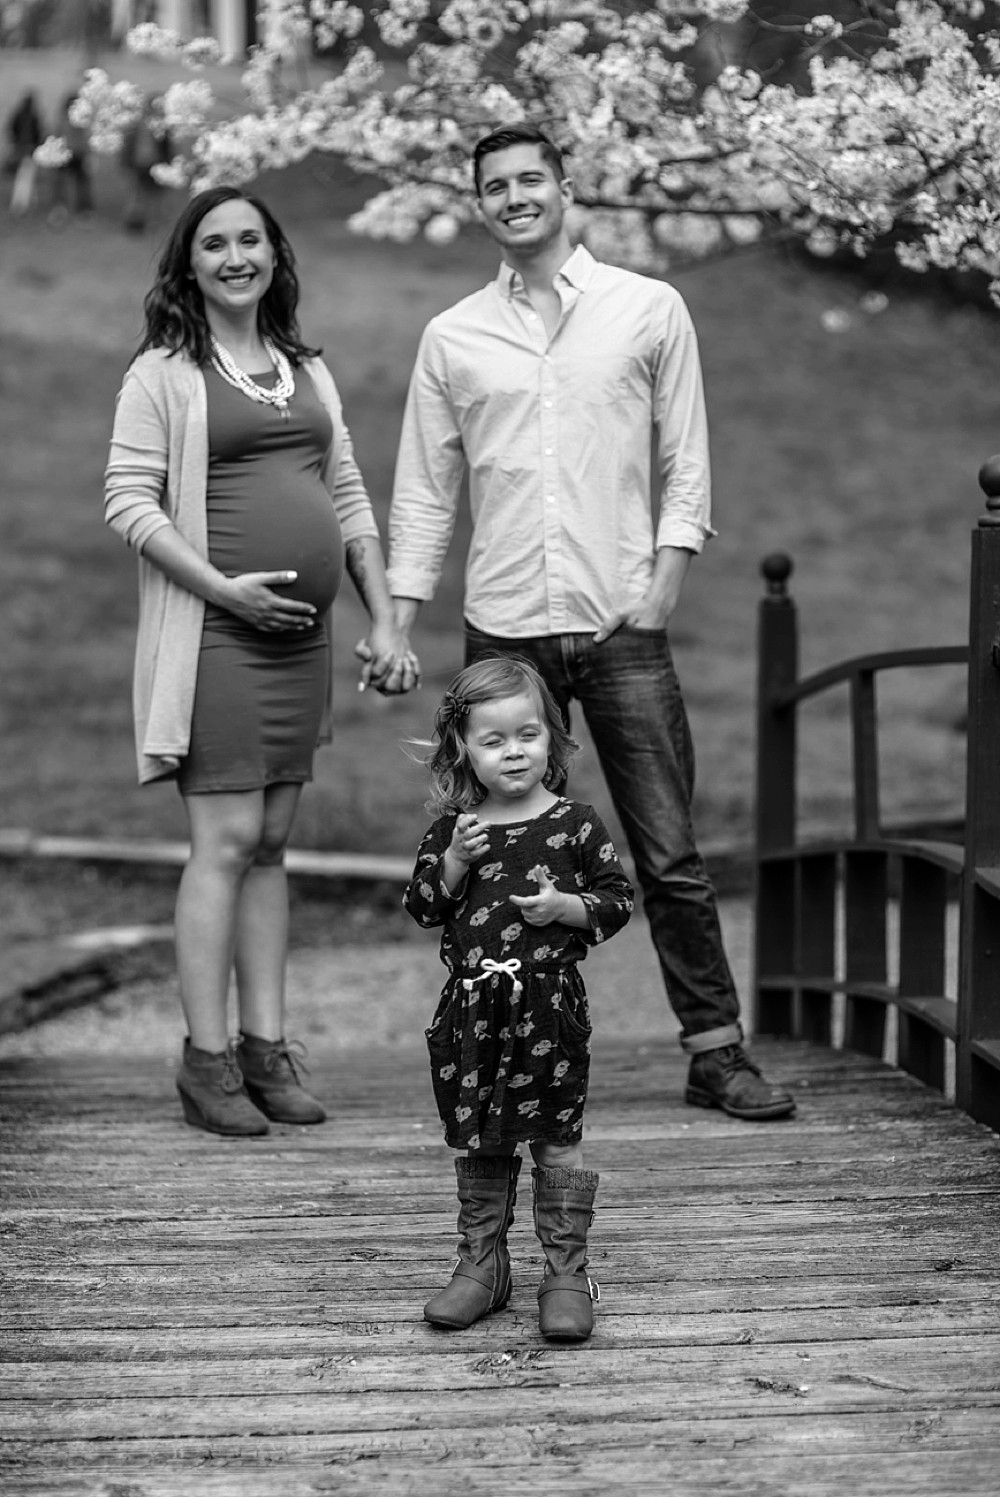 McSwain_Maternity_Ellington_Agricultual_Center_Nashville_Family_Photographer_Tausha_Ann_Photography_0019.jpg